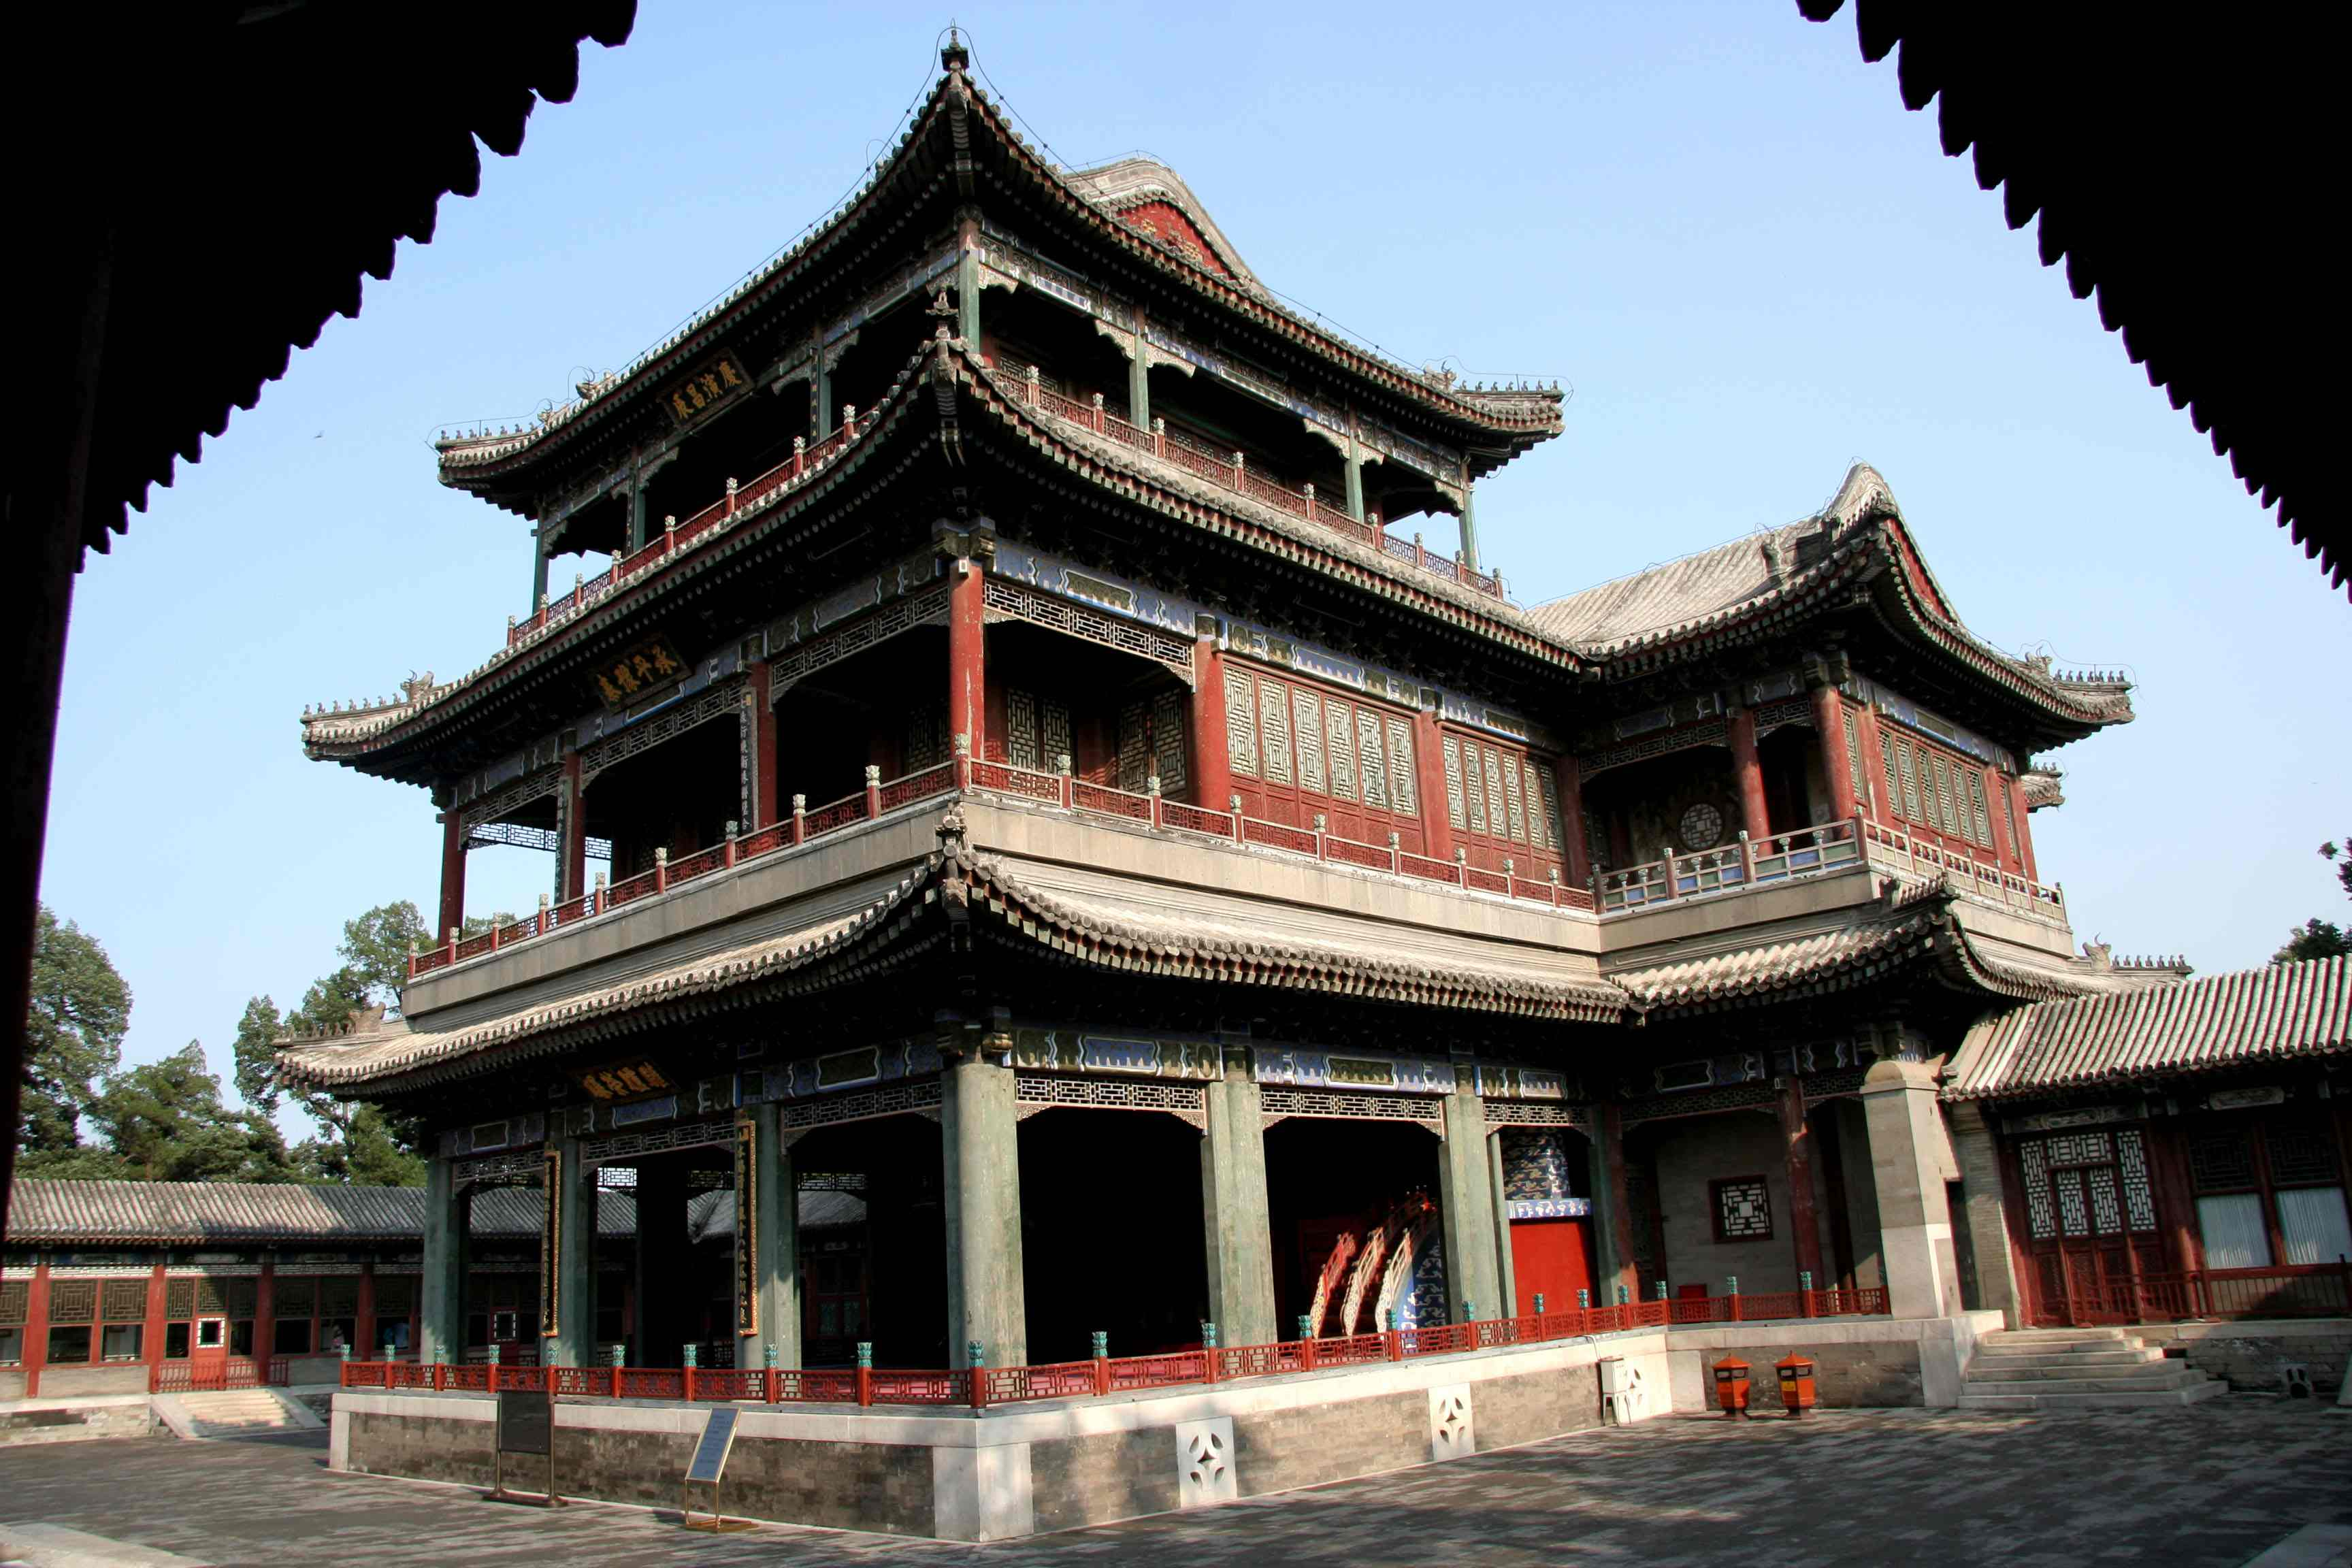 http://ewh.ieee.org/conf/ius_2008/lu_images/plenary_06_stage_de_he_yuan_summer_palace.jpg